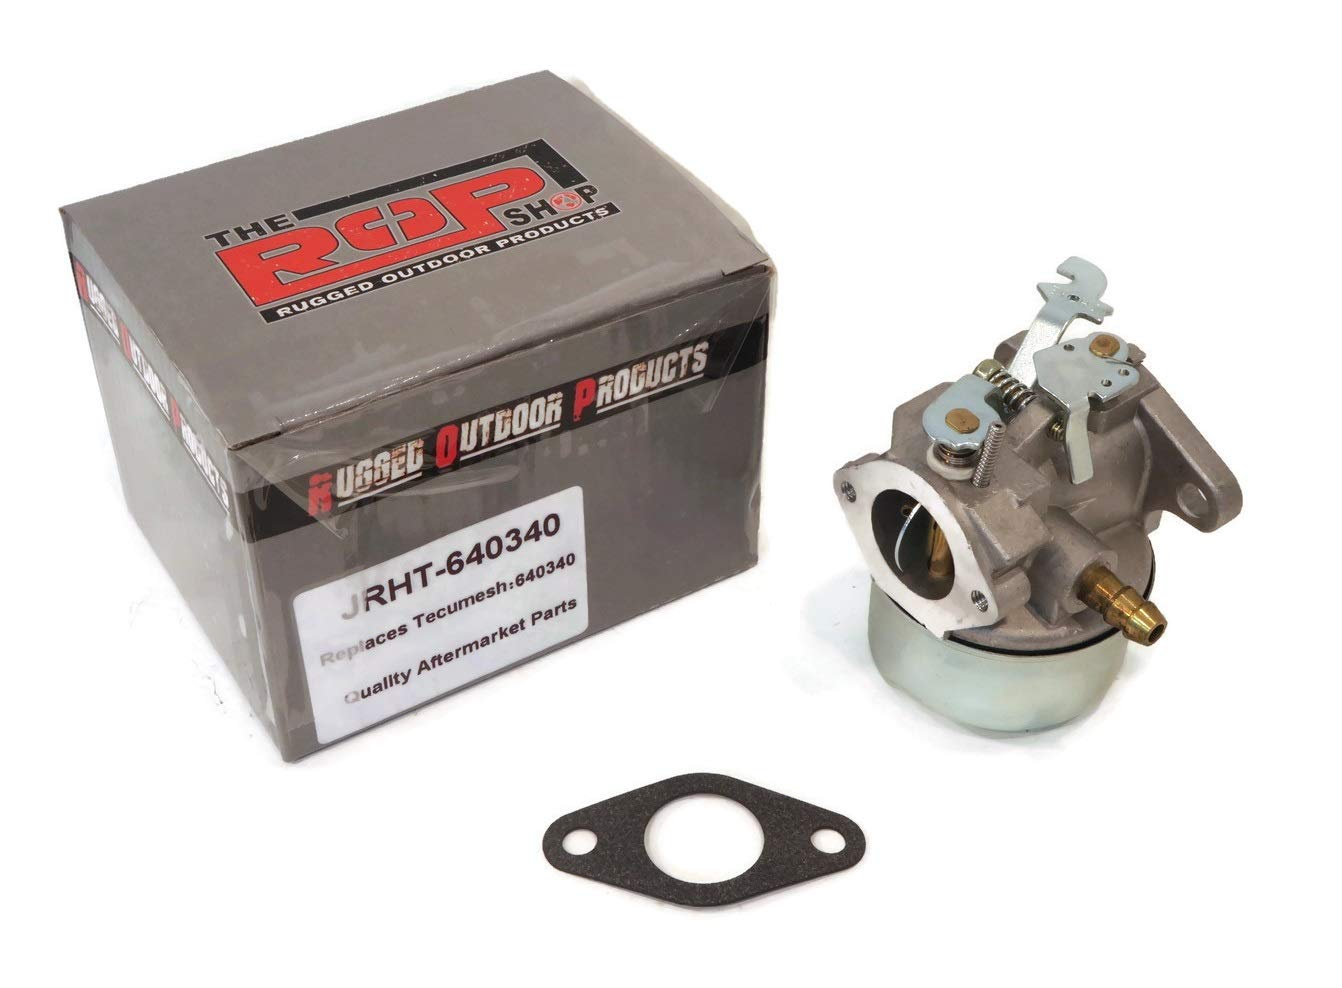 The ROP Shop New Carburetor Carb for Tecumseh 640340 OH195EA OH195EP OH195XA OH195XP Engines by The ROP Shop